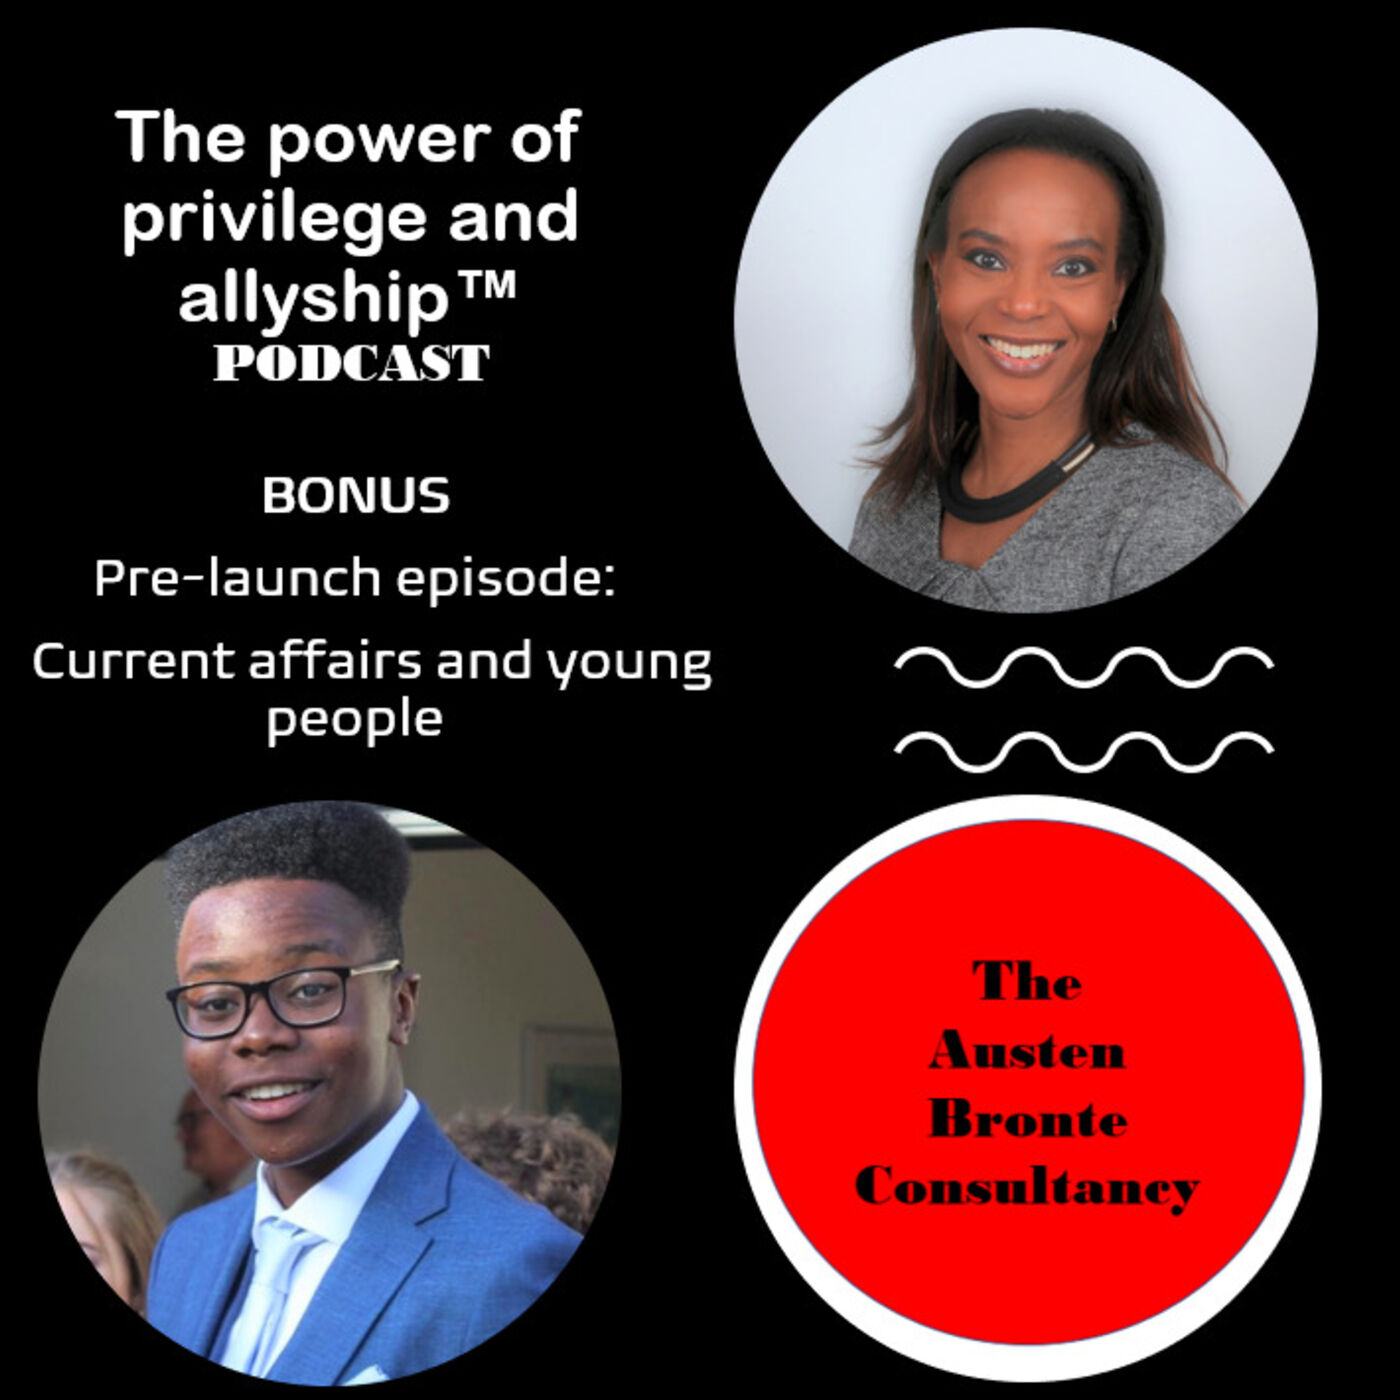 S1 BONUS PRE-LAUNCH EPISODE: Current affairs and young people feat. Max Abimbola